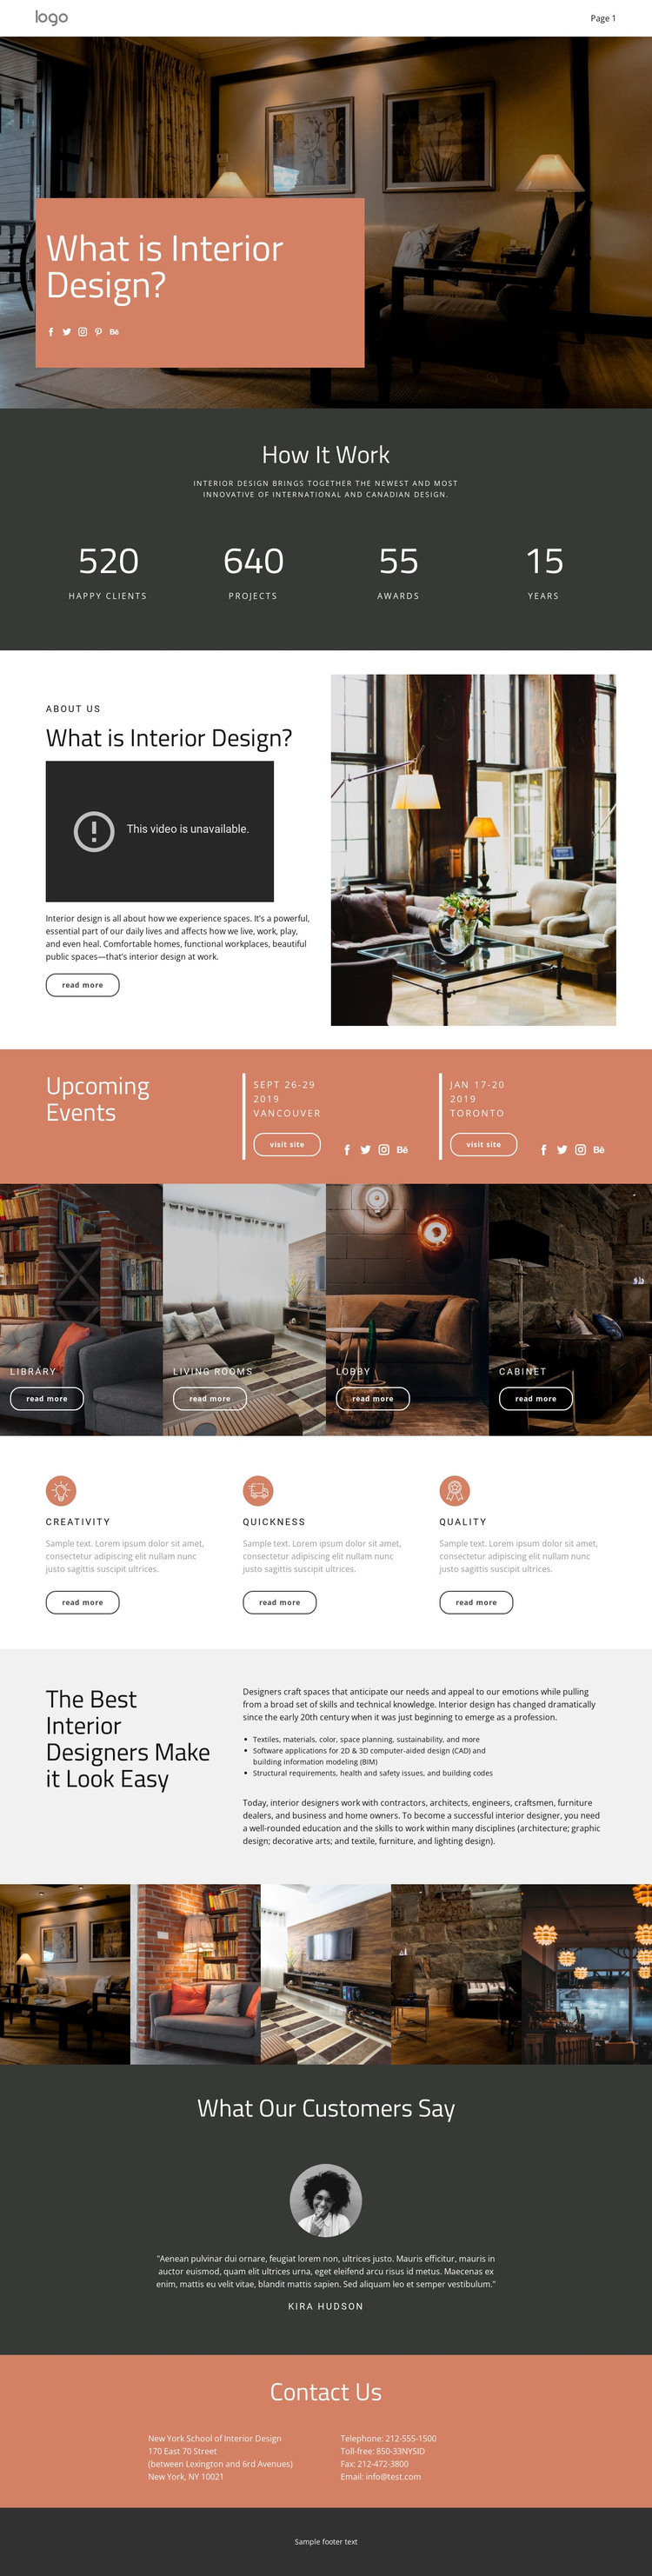 Design of houses and apartments Web Design